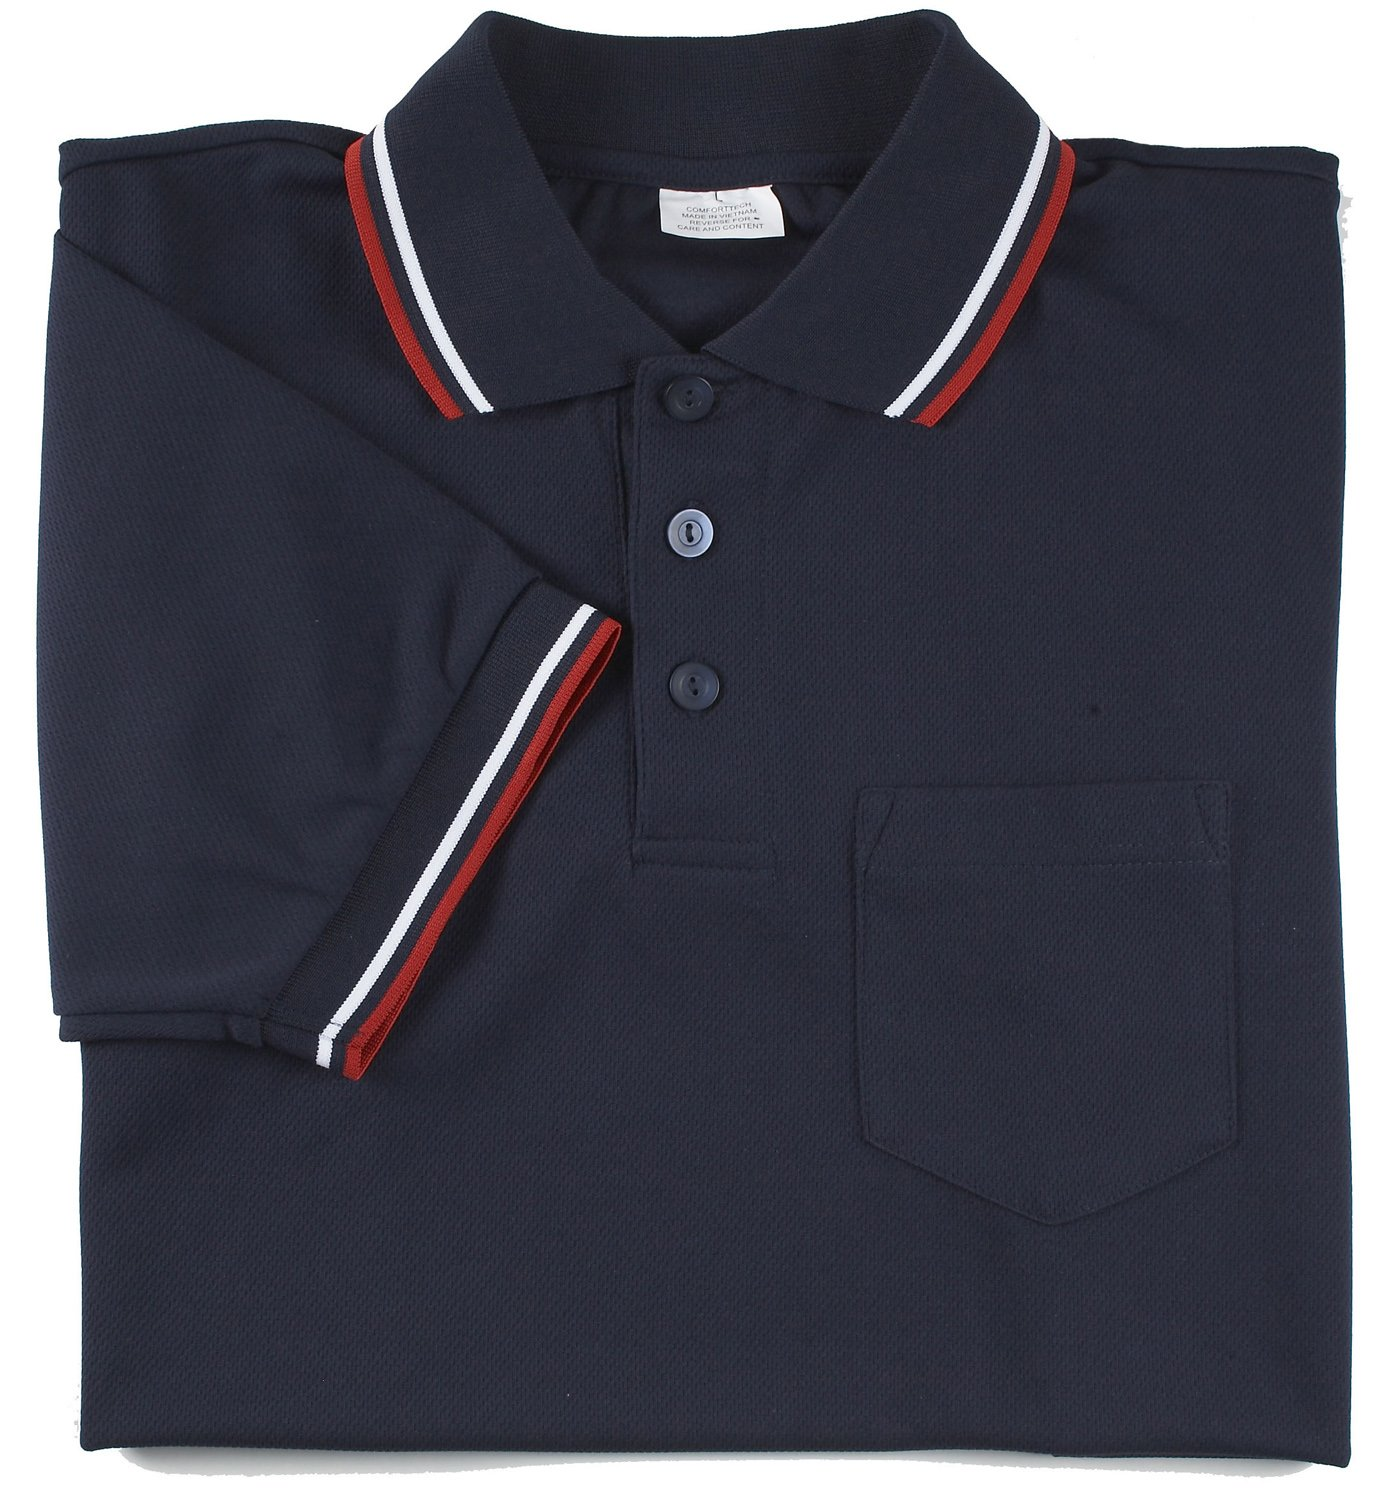 Adams USA Smitty Major League Style Short Sleeve Umpire Shirt with Front Chest Pocket (Navy, 4X-Large)